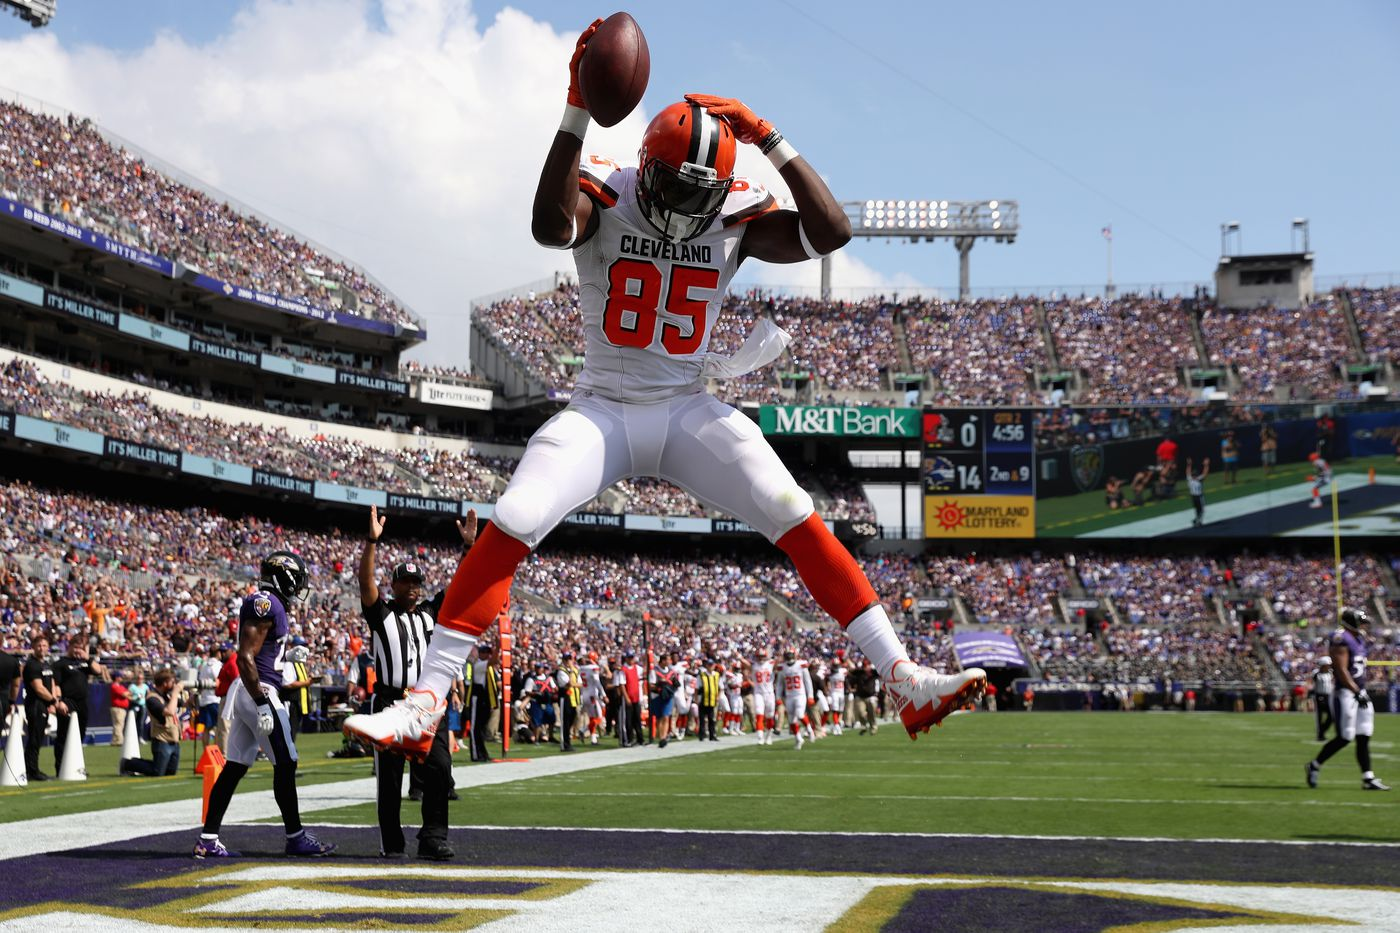 Cleveland Browns TE David Njoku is waging a lonely war